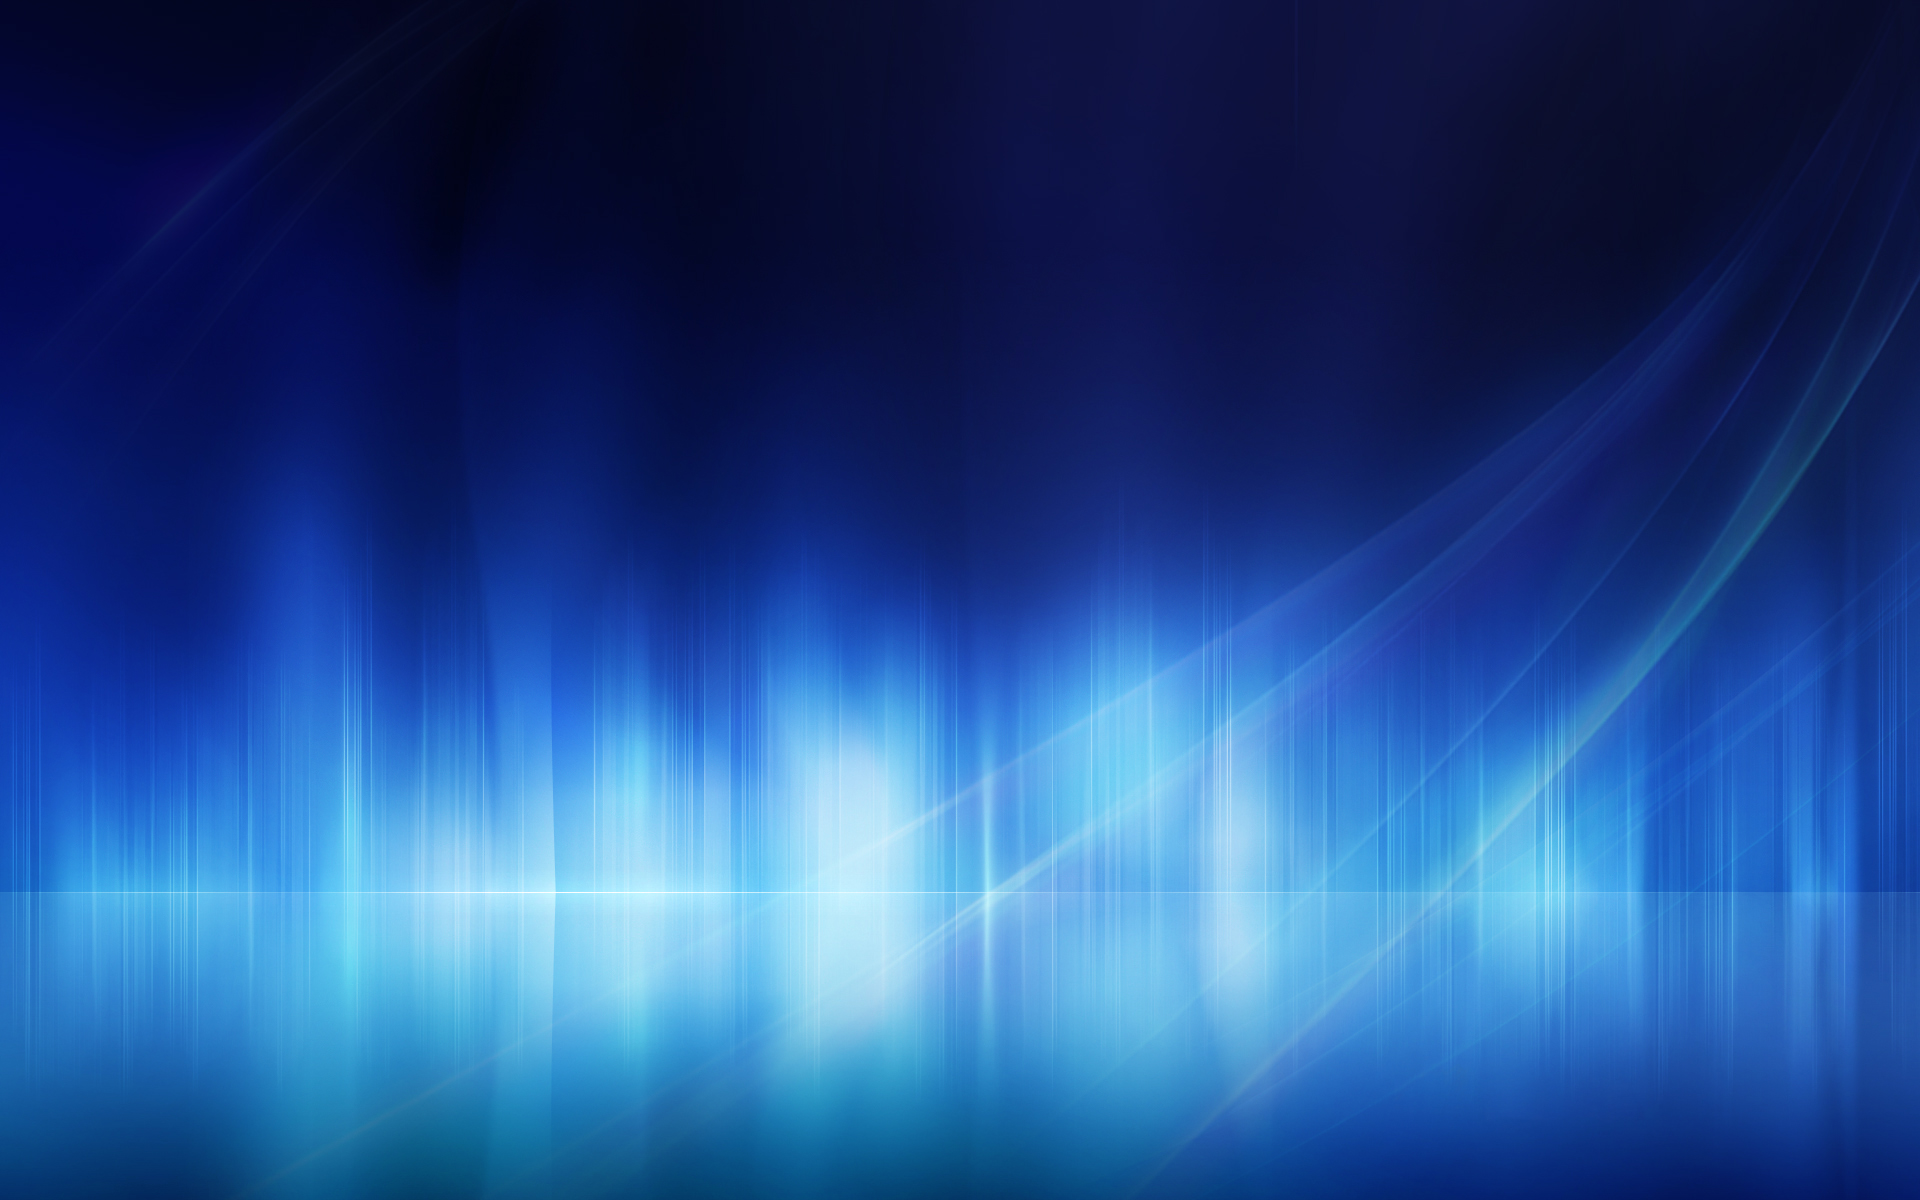 41 High Definition Blue Wallpapers For Download 1920x1200